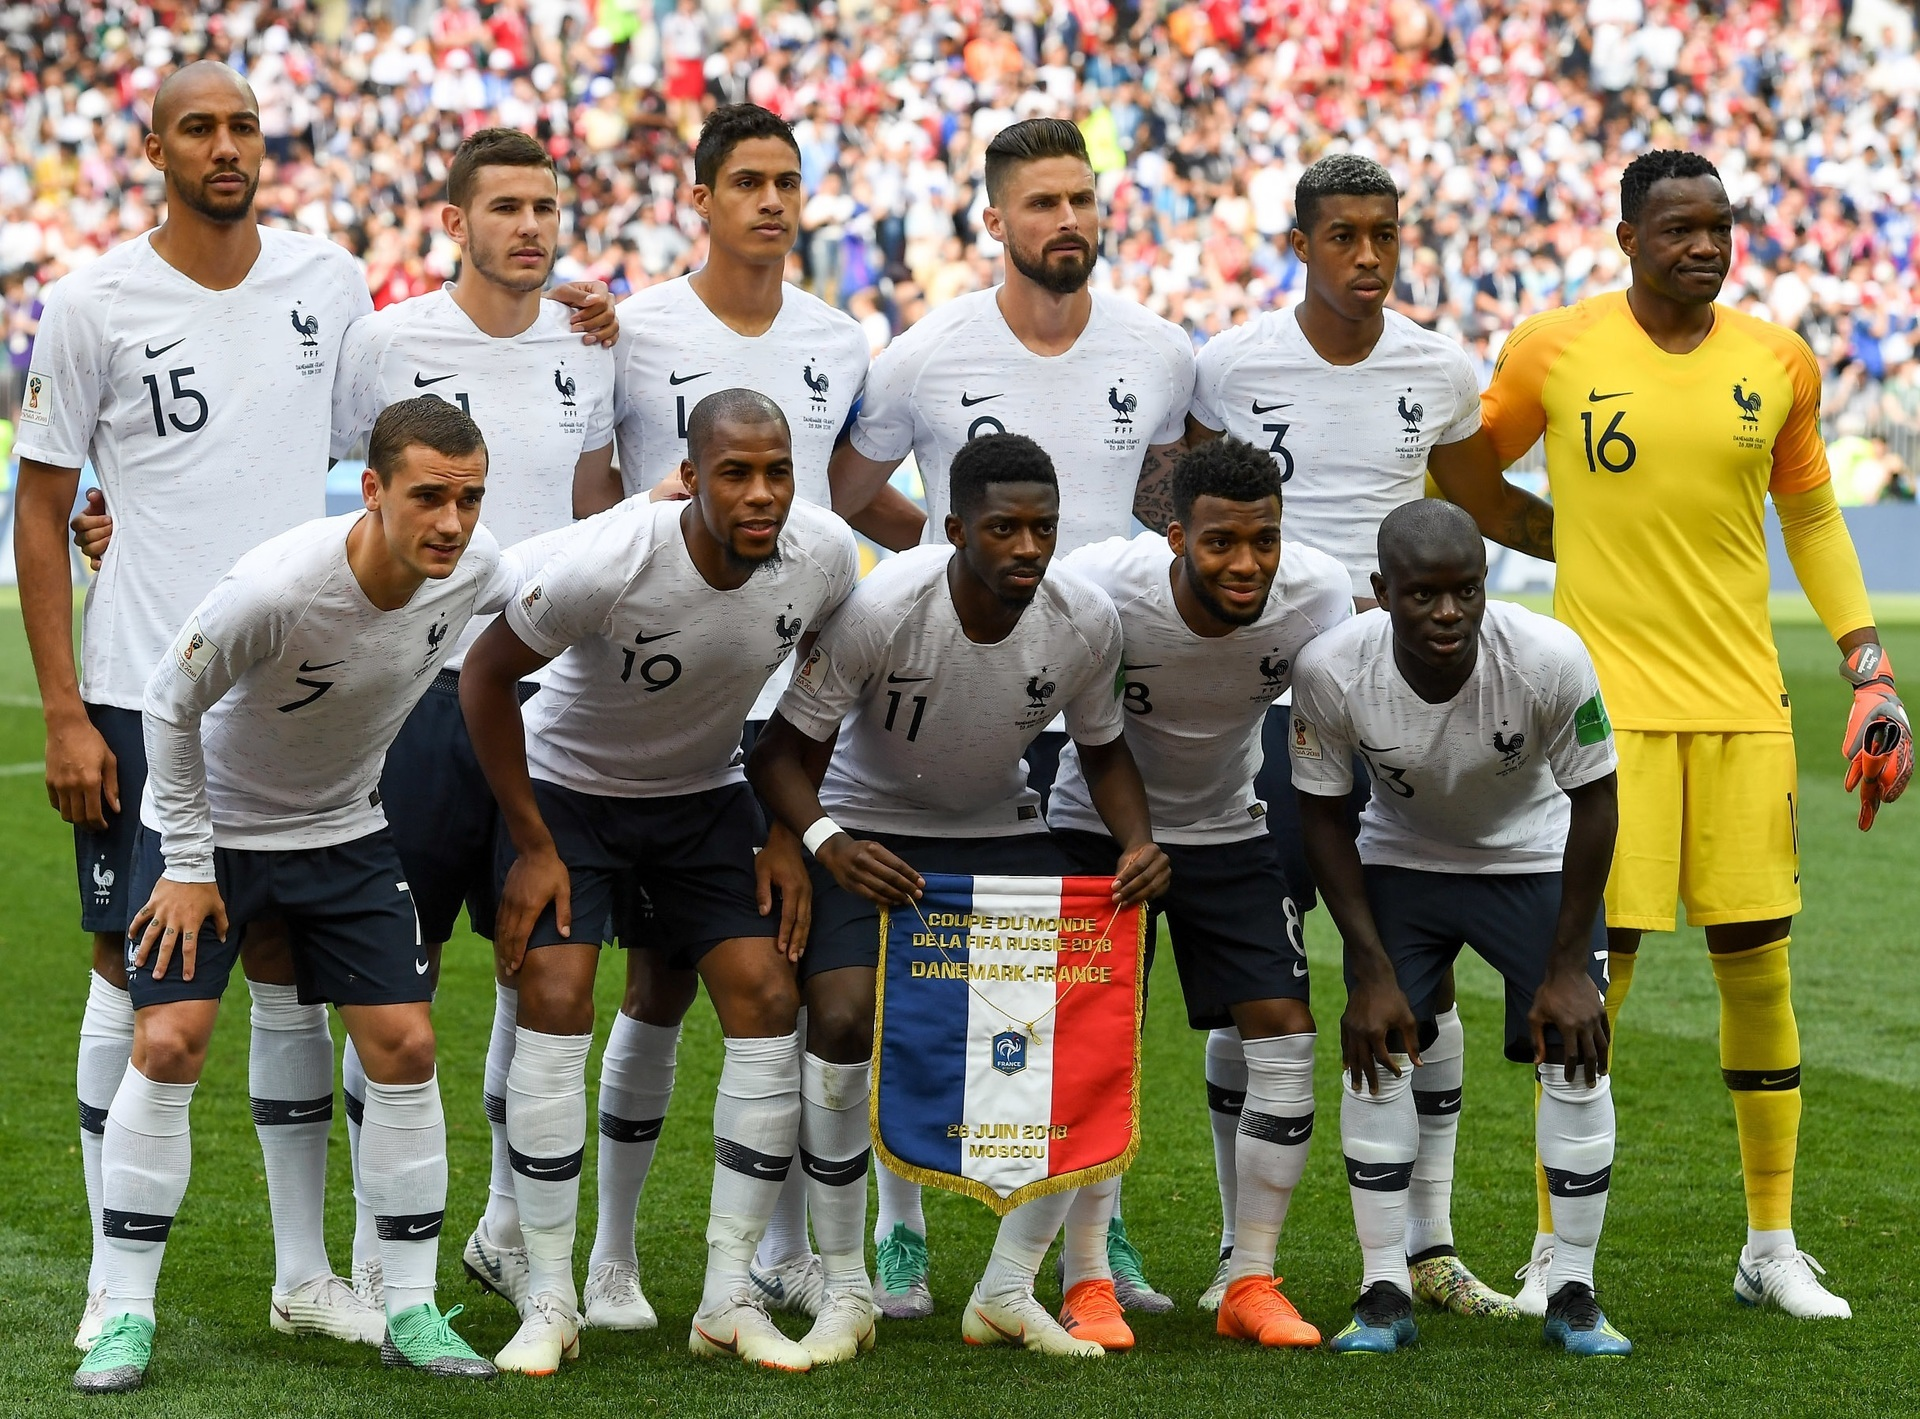 France-2018-NIKE-world-cup-away-kit-white-navy-white-line-up.jpg